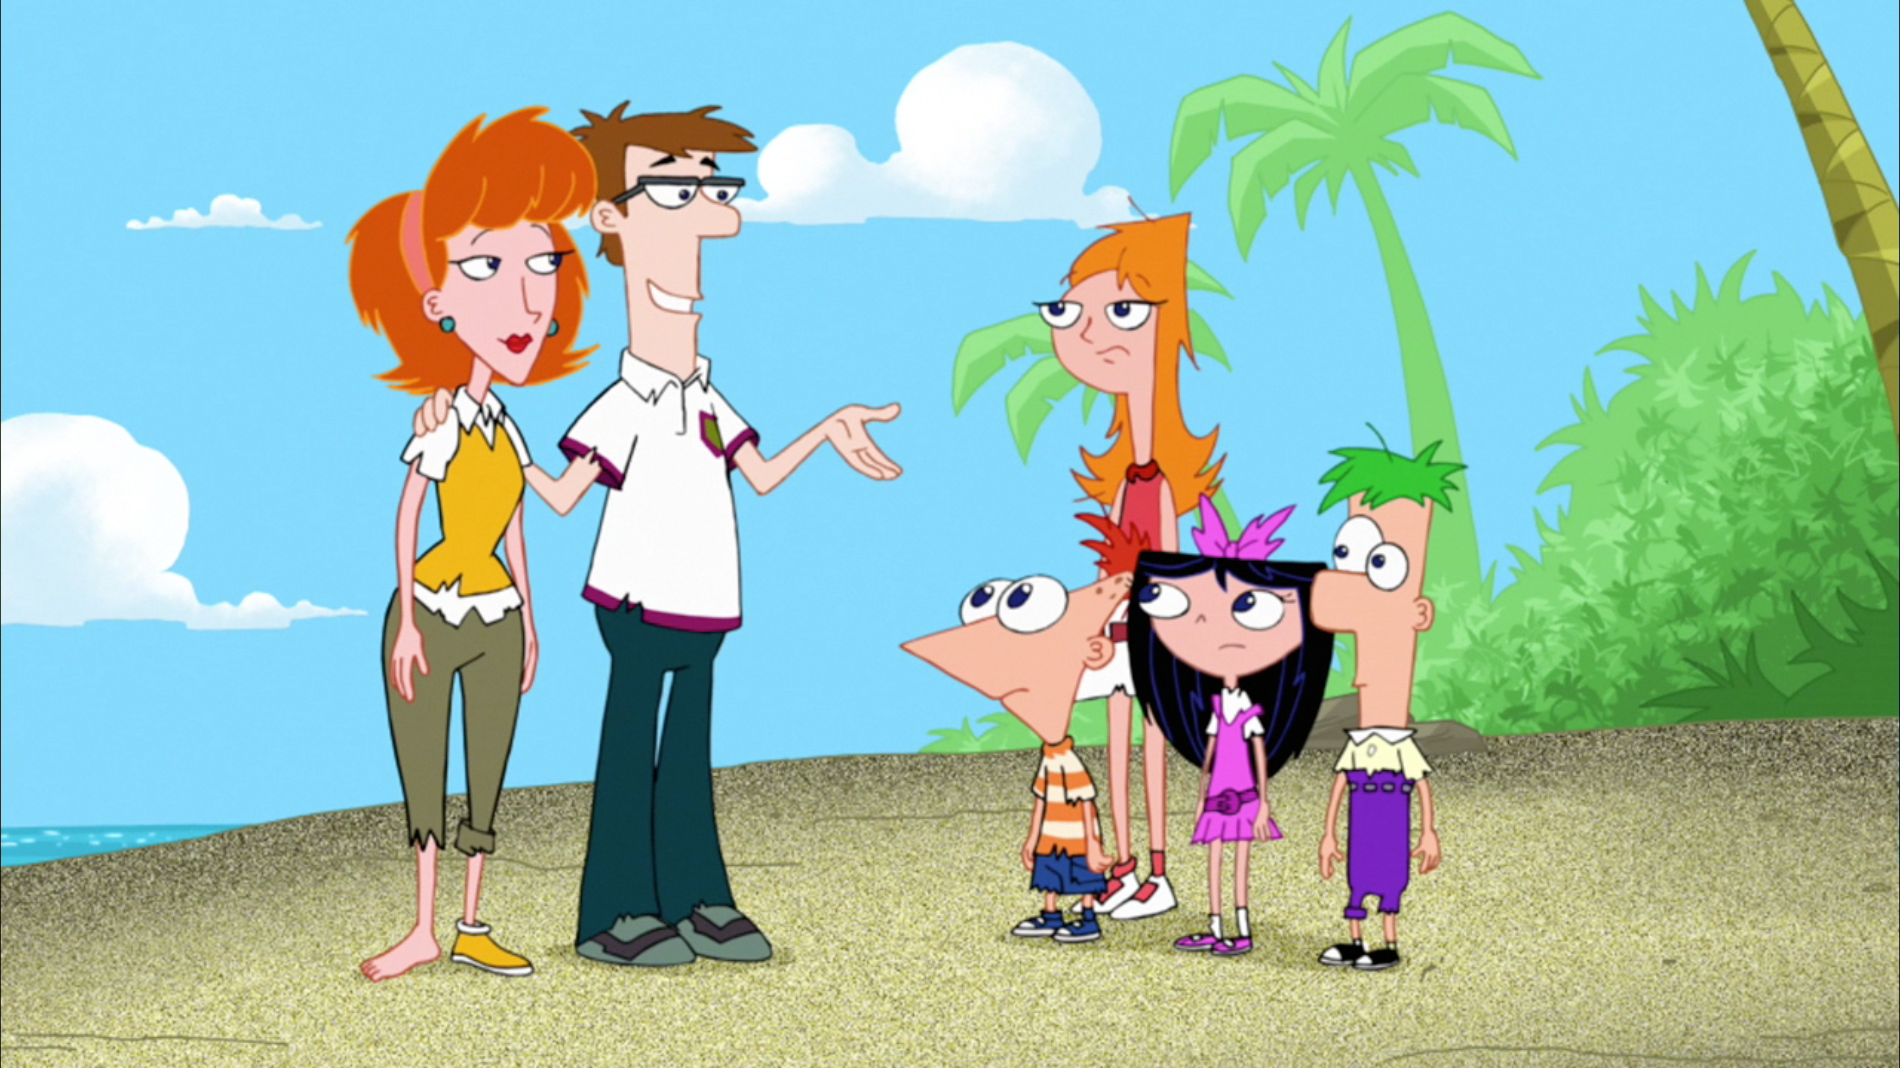 Isabella From Phineas And Ferb Porn Pretty swiss family phineas | phineas and ferb wiki | fandom poweredwikia